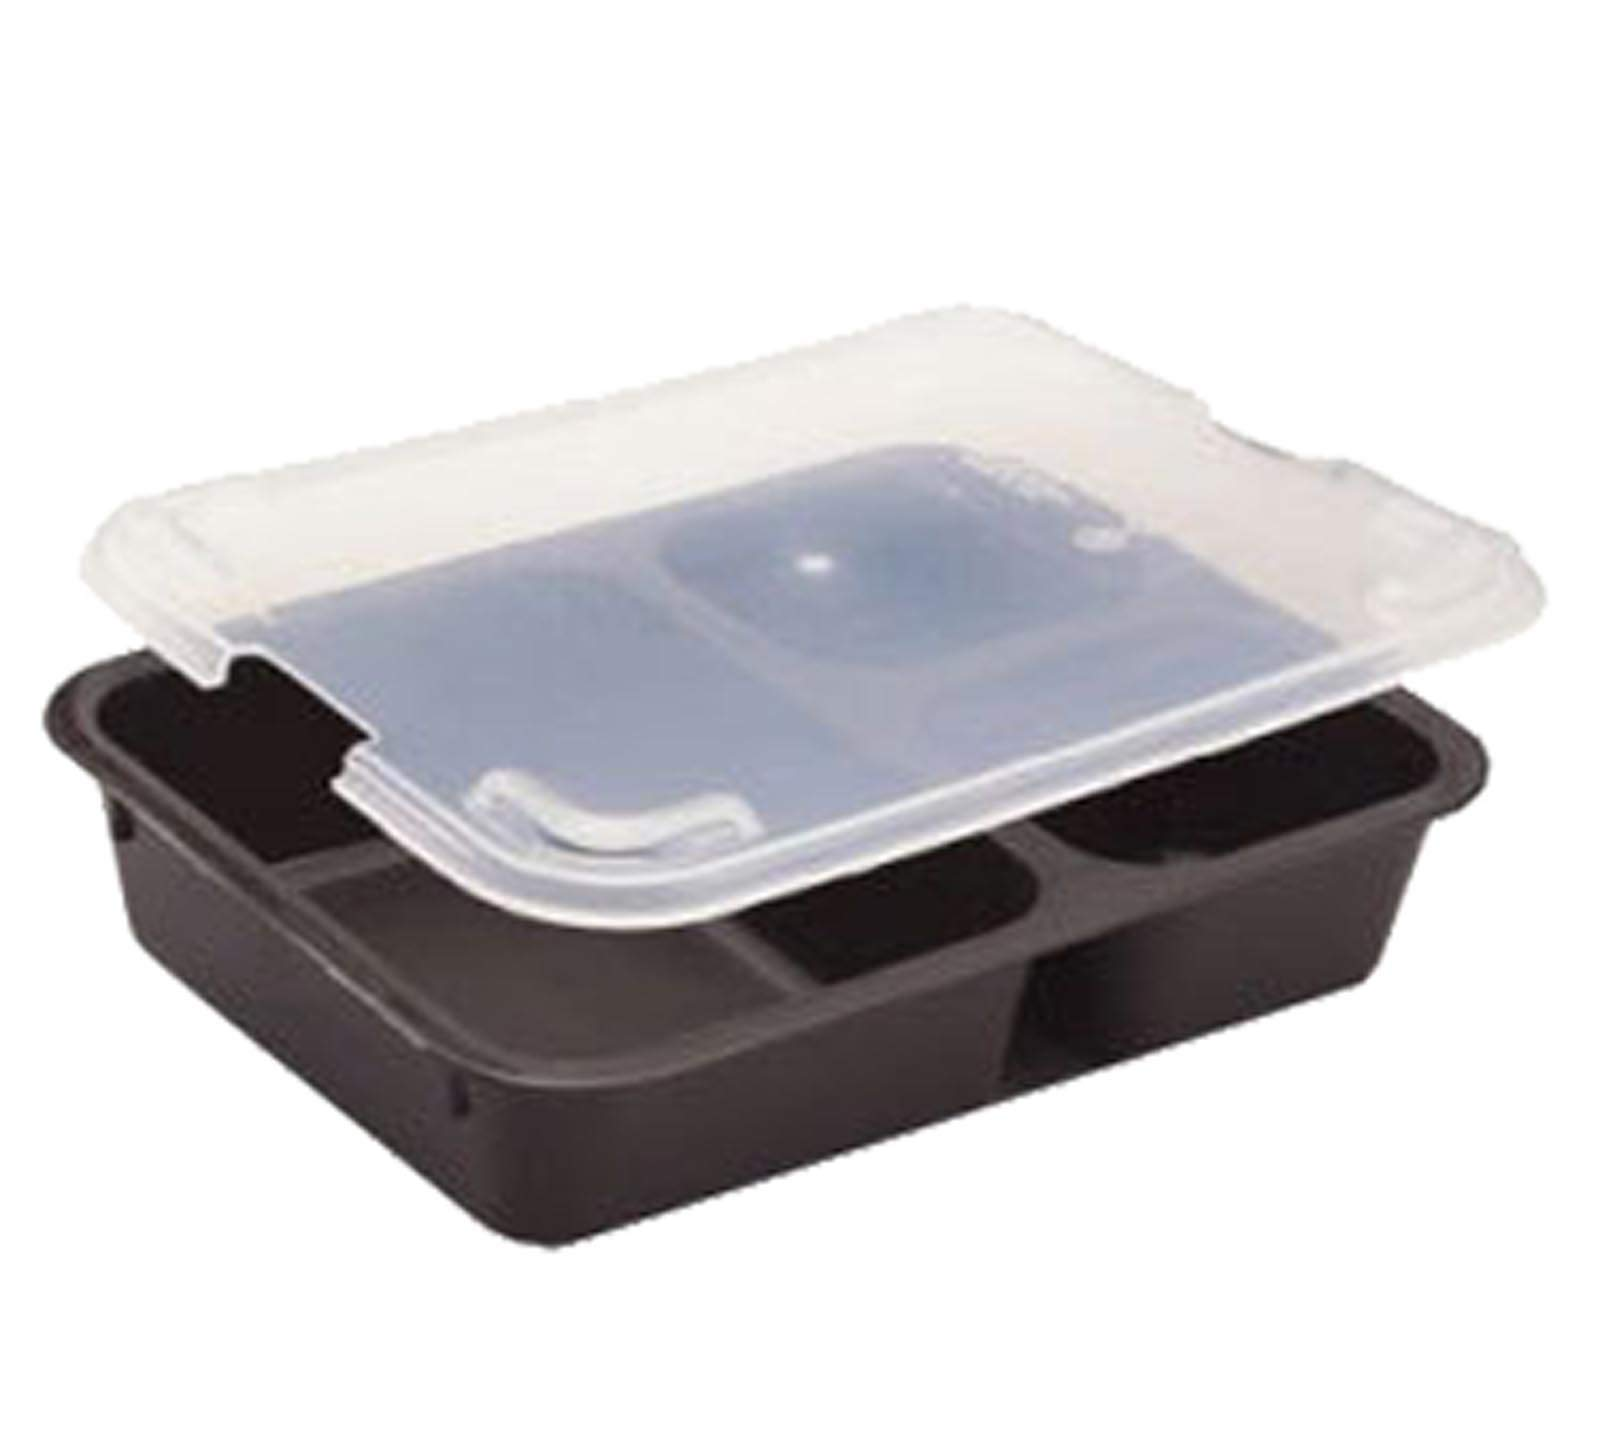 Cambro Tray 3Comp Cr Lid/853Fcp-Trans (853FCPC190) Category: Serving Platters and Trays